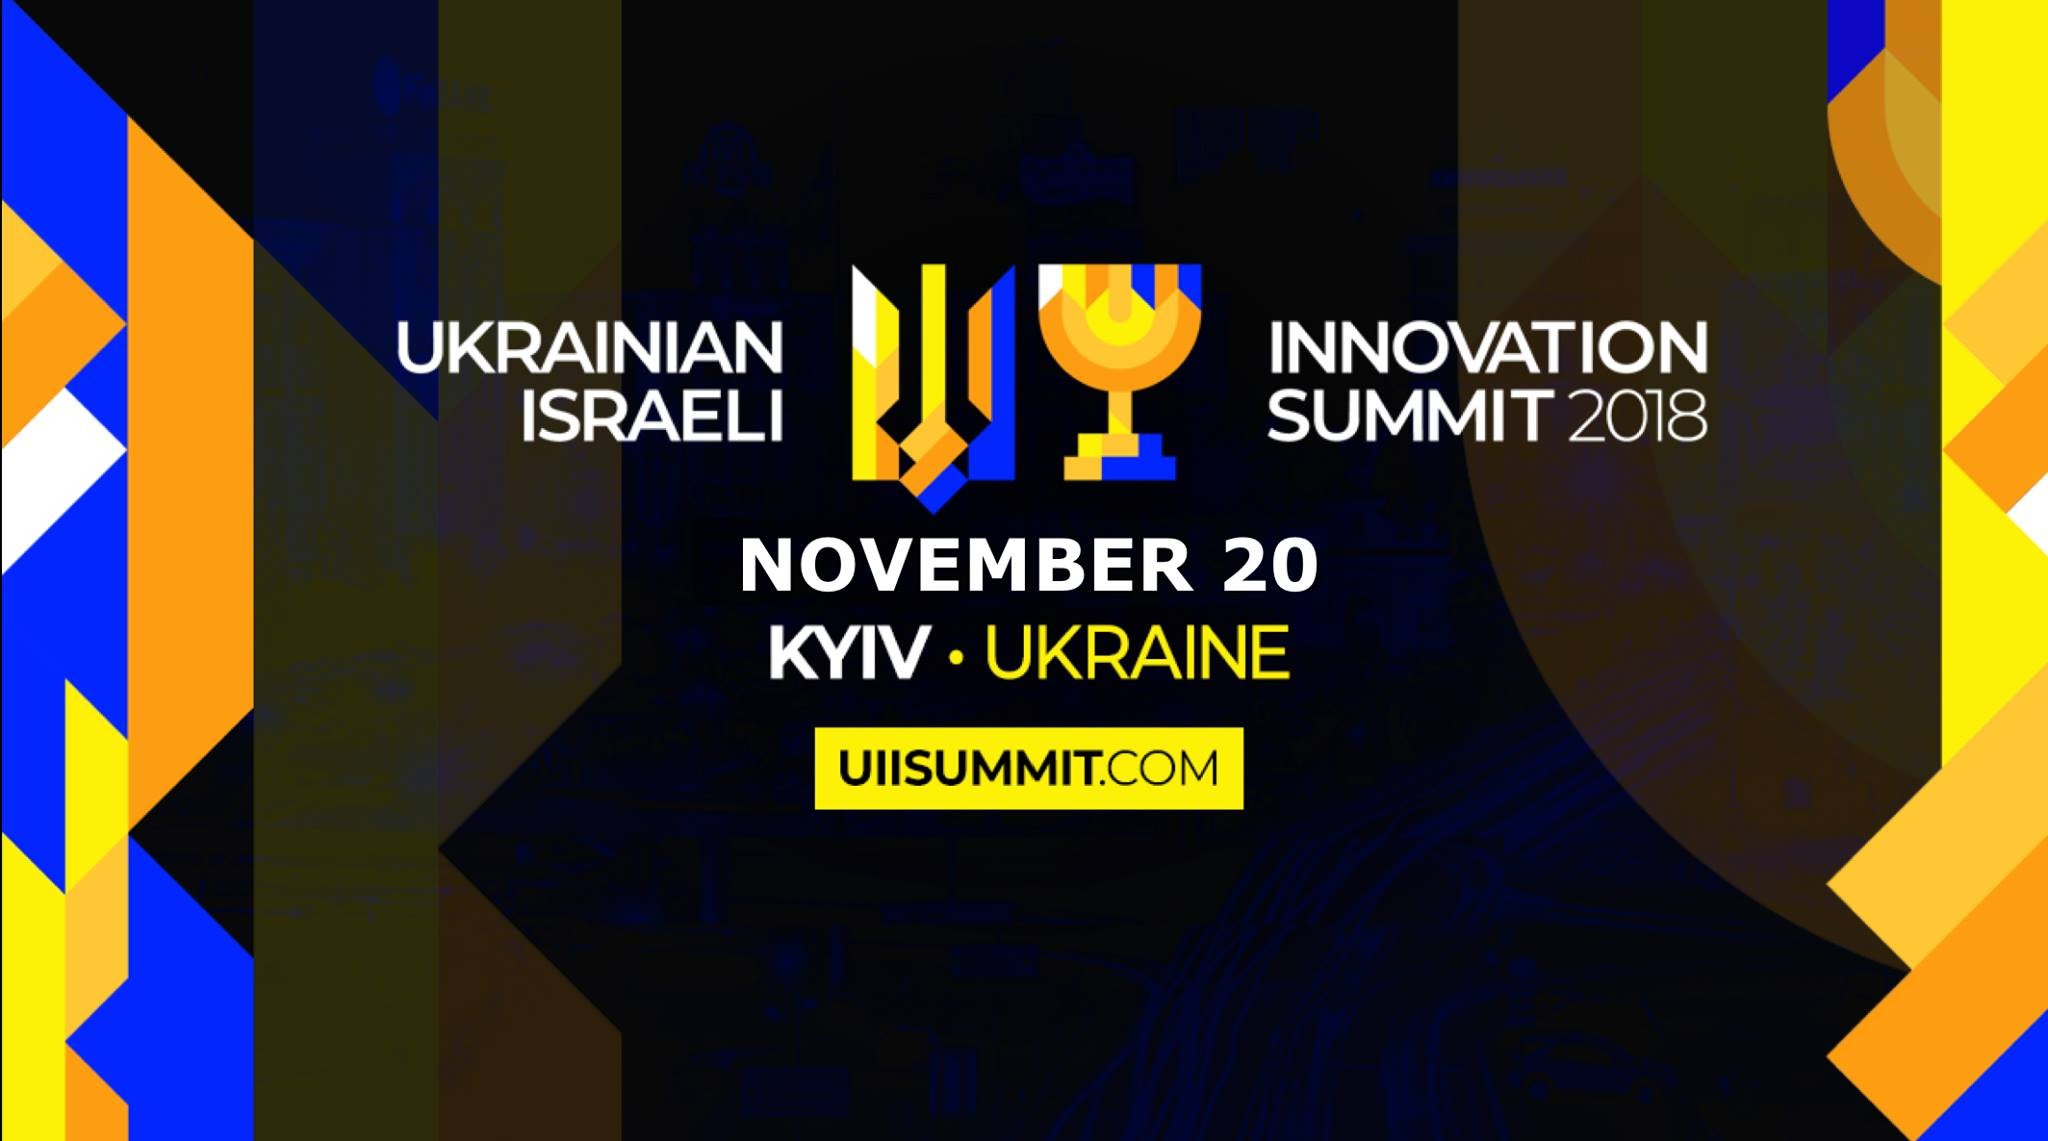 Ukrainian Israeli Innovation Summit 2018 (1)